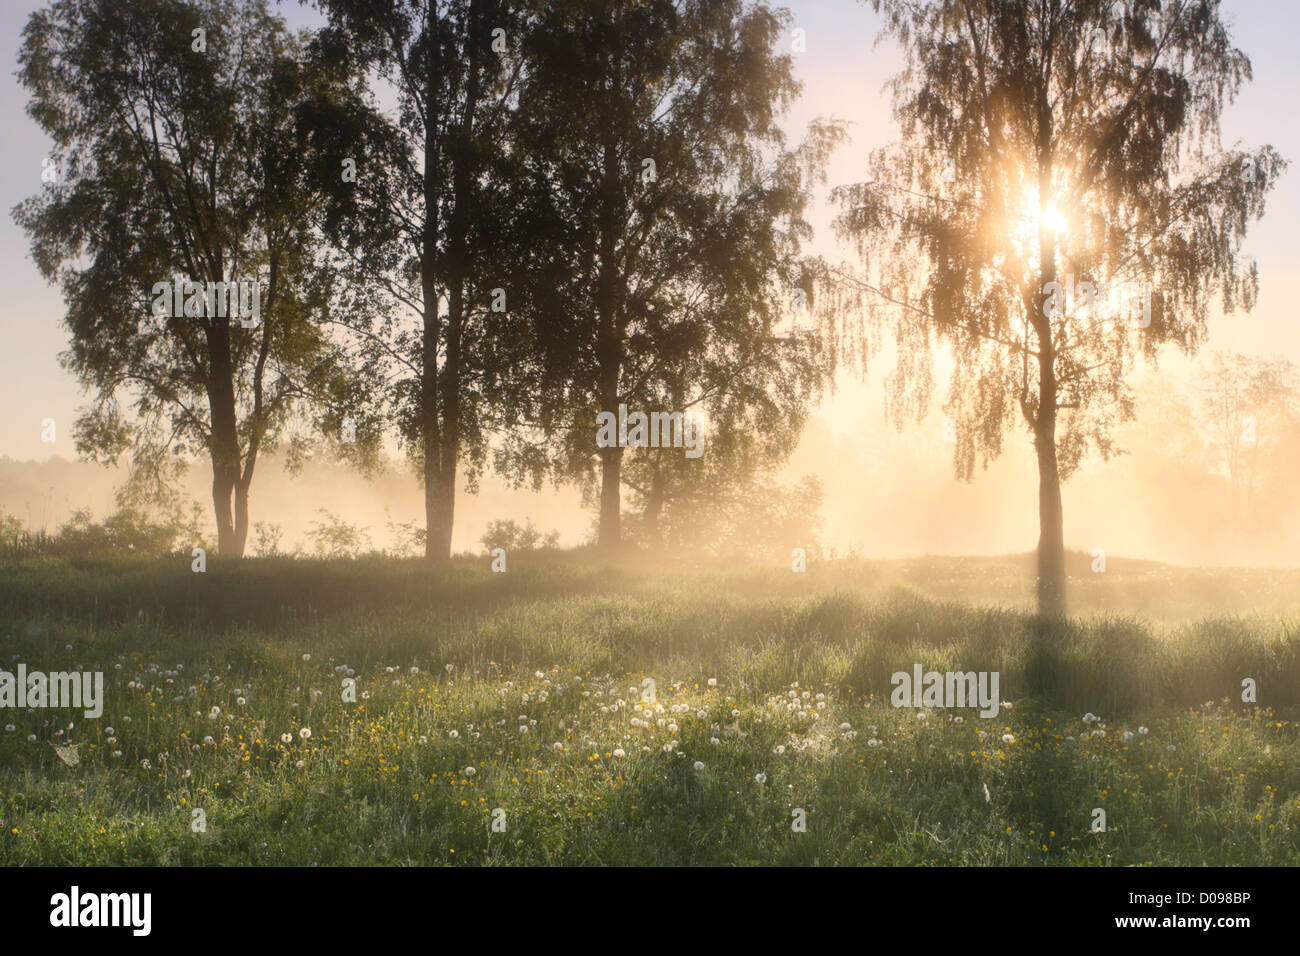 Golden morning at Floodplain, Estonia, Europe - Stock Image